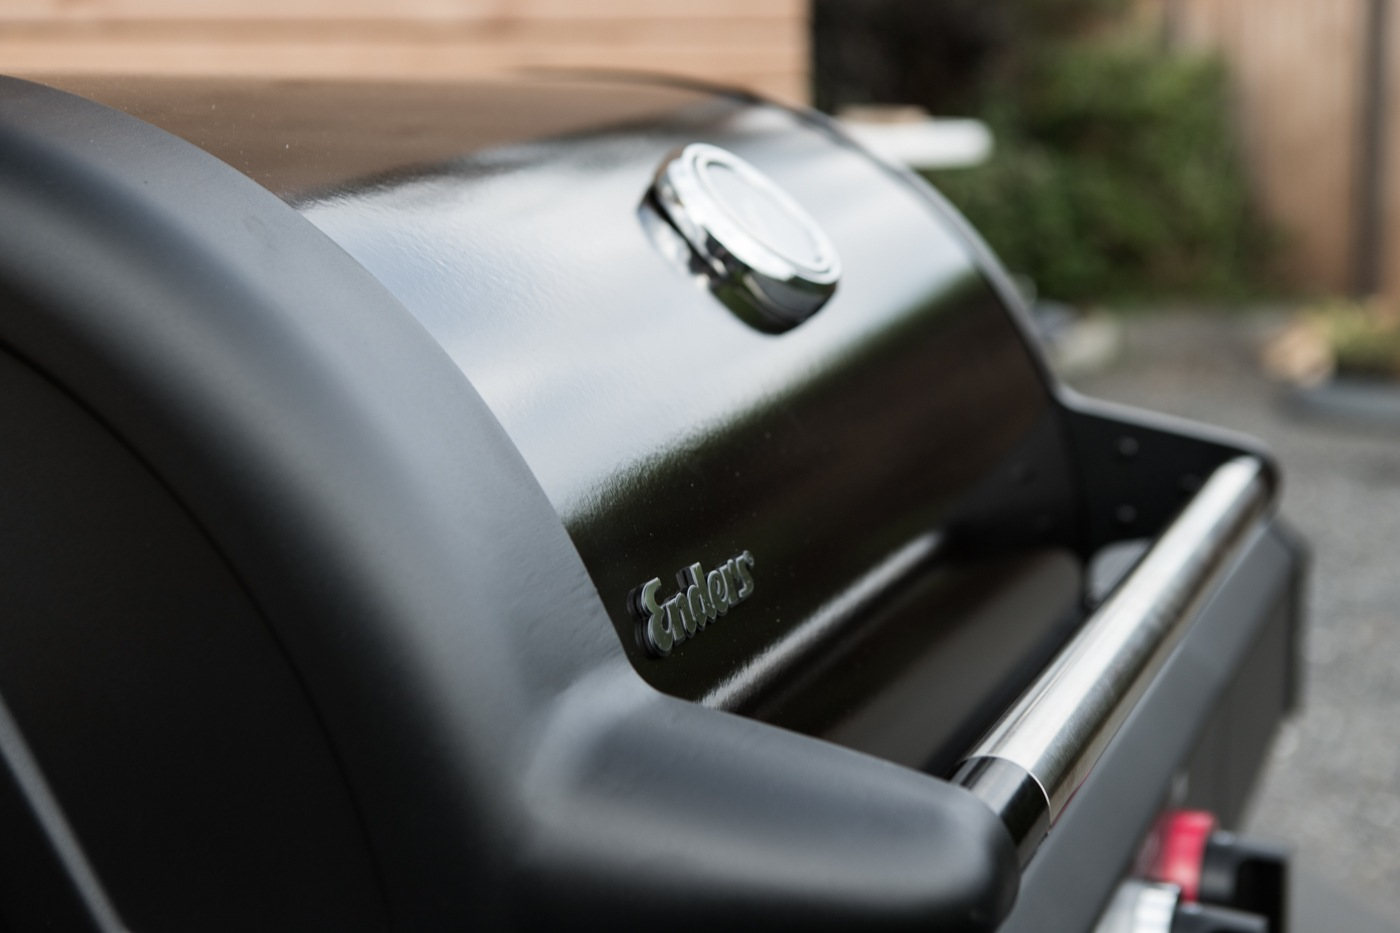 Enders Gasgrill Kansas Black 3k Turbo Test : Testbericht enders kansas gasgrill black pro k turbo vorstellung